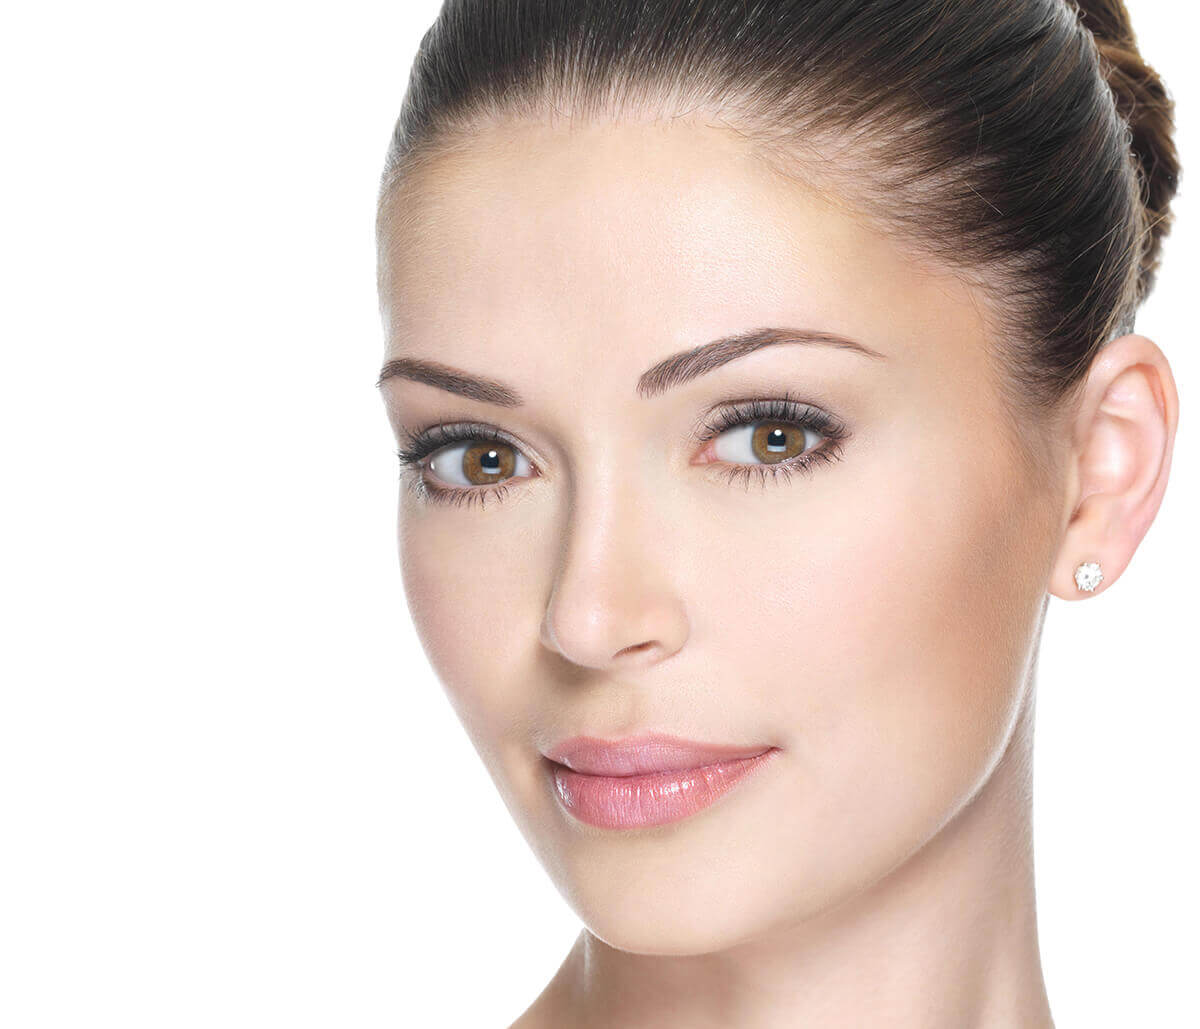 Learn More About Laser Skin Resurfacing in Hamilton, ON Area